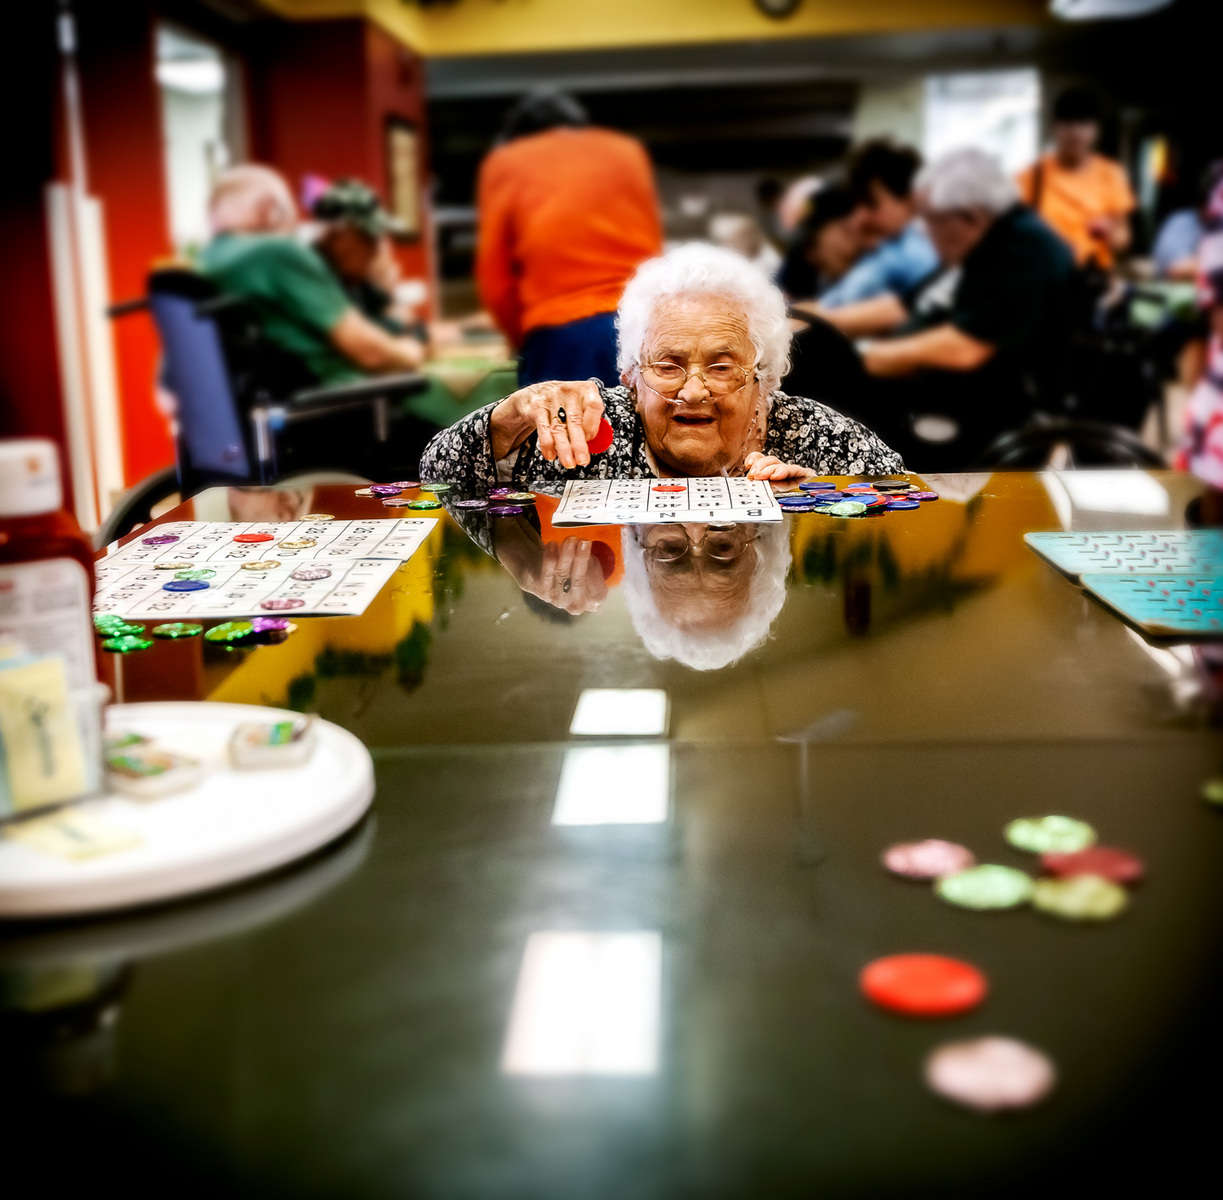 Bingo at the VA Center Homelake, CO : Visiting Mom : NY - Portrait Photographer Video, Architectural, Corporate Editorial Location Photography